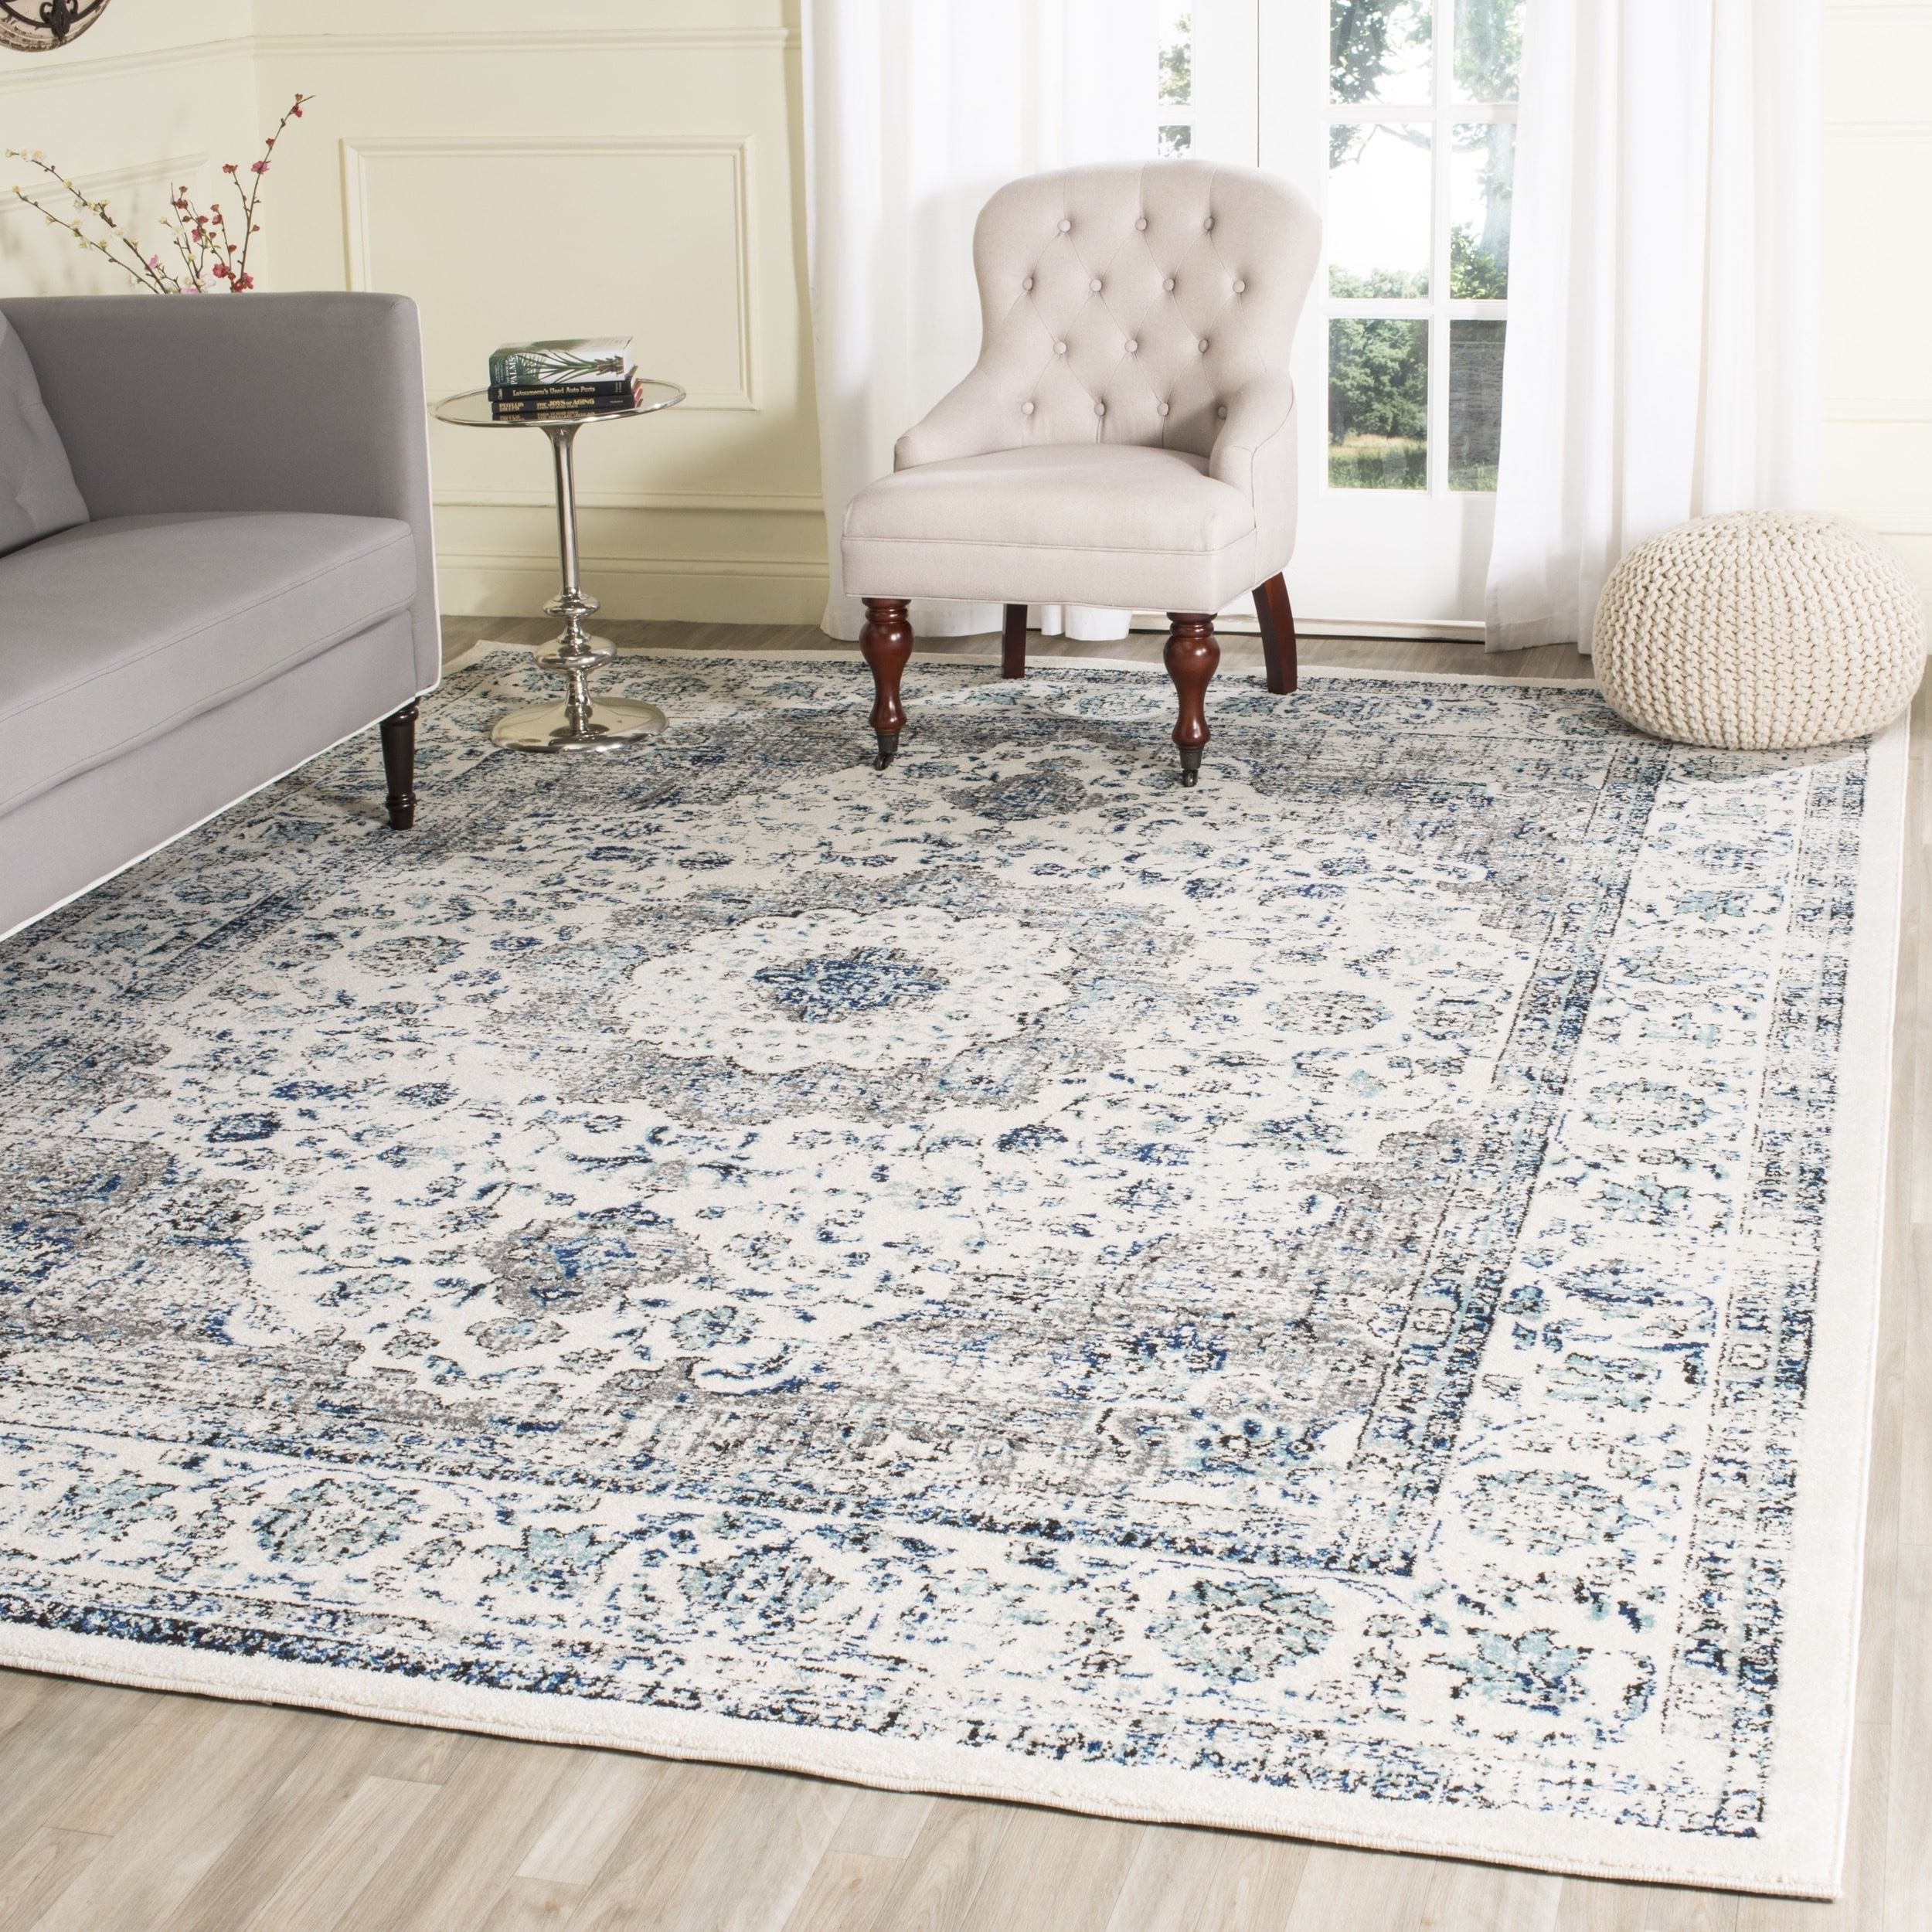 rugs soft and depot home flooring rug ultra latte instyle cheap super thick shag elegant ivory tan pan